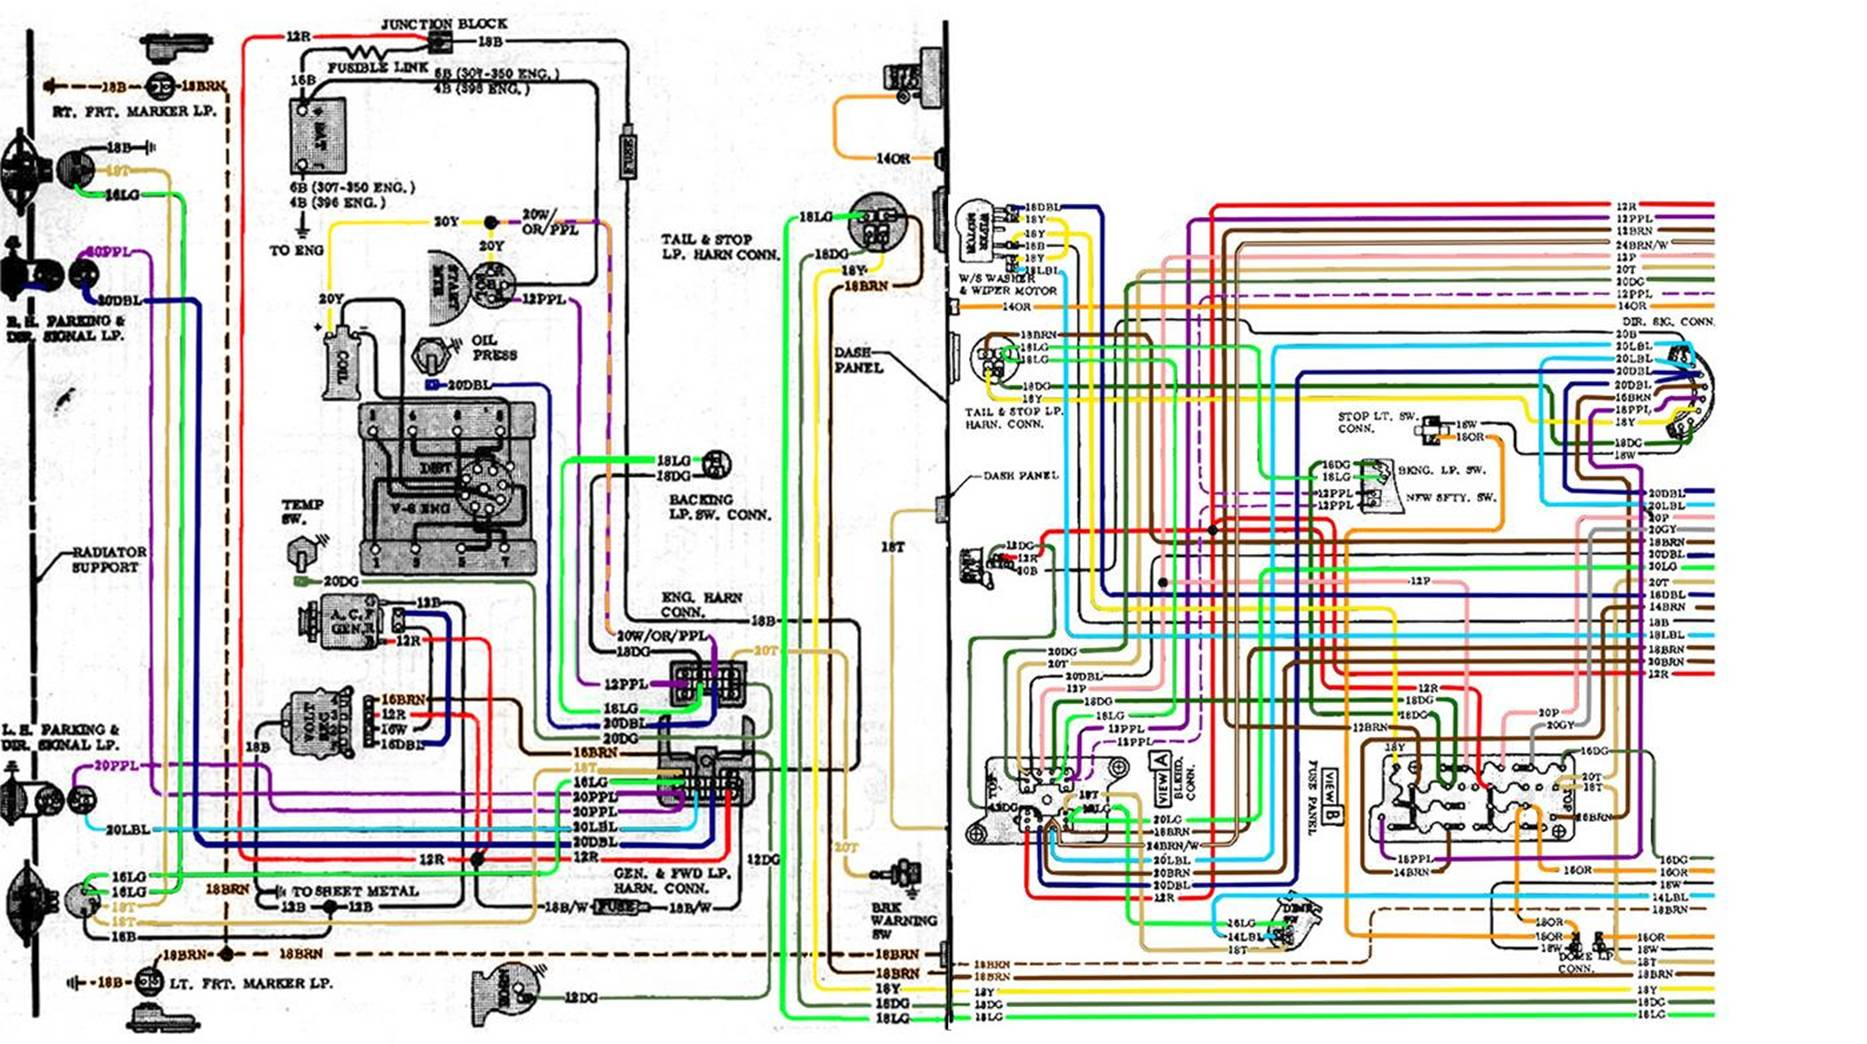 70 Chevelle Ss Wiring Harness Diagram Opinions About 1967 Starter 71 Door Schematic Reveolution Of Rh Somegradawards Co Uk 1969 1968